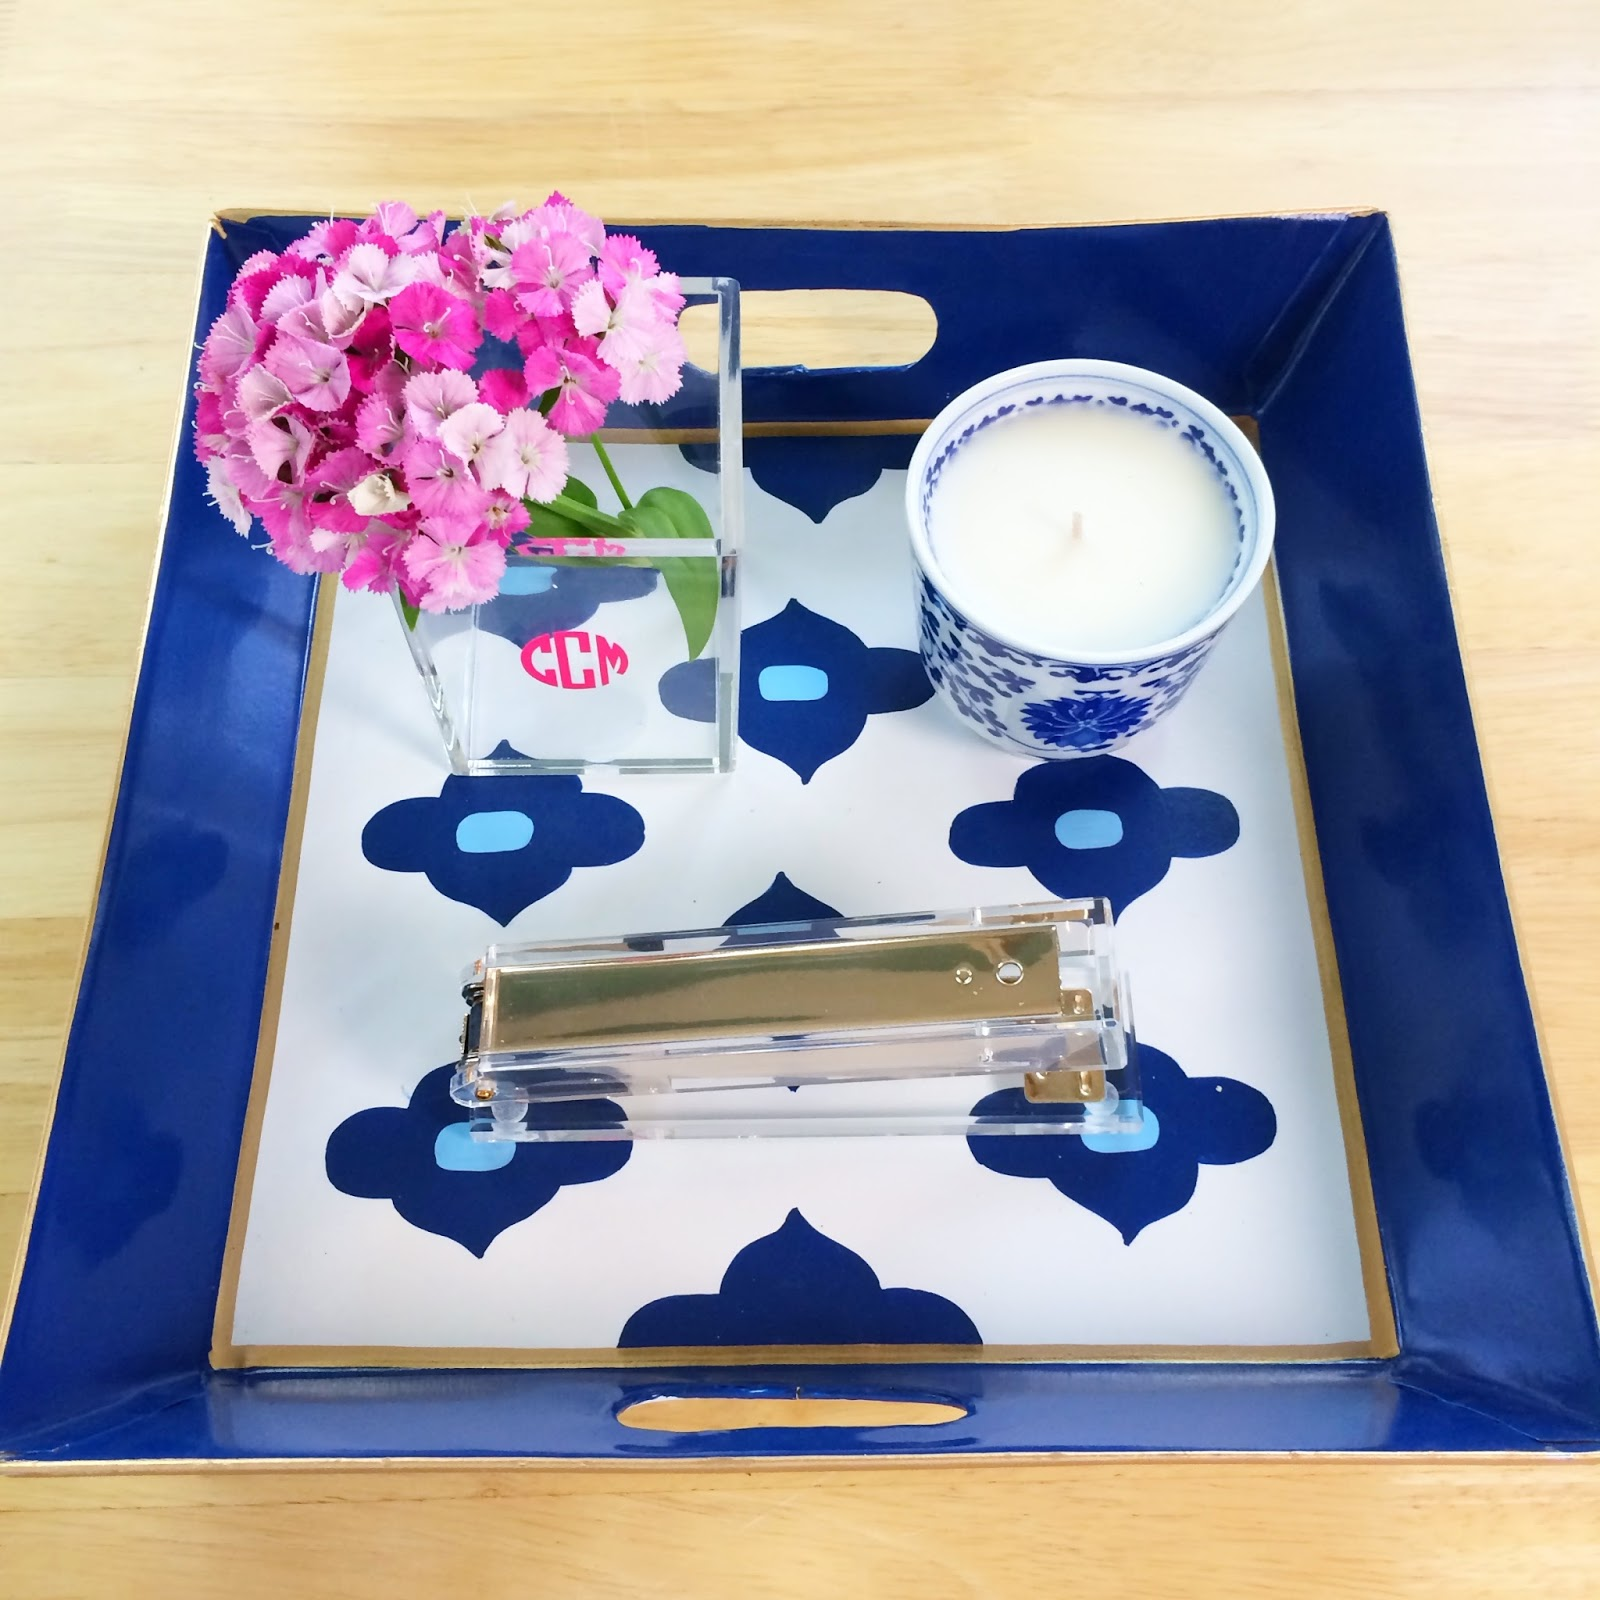 The most perfect desk decor you've ever seen! All from Design Darling